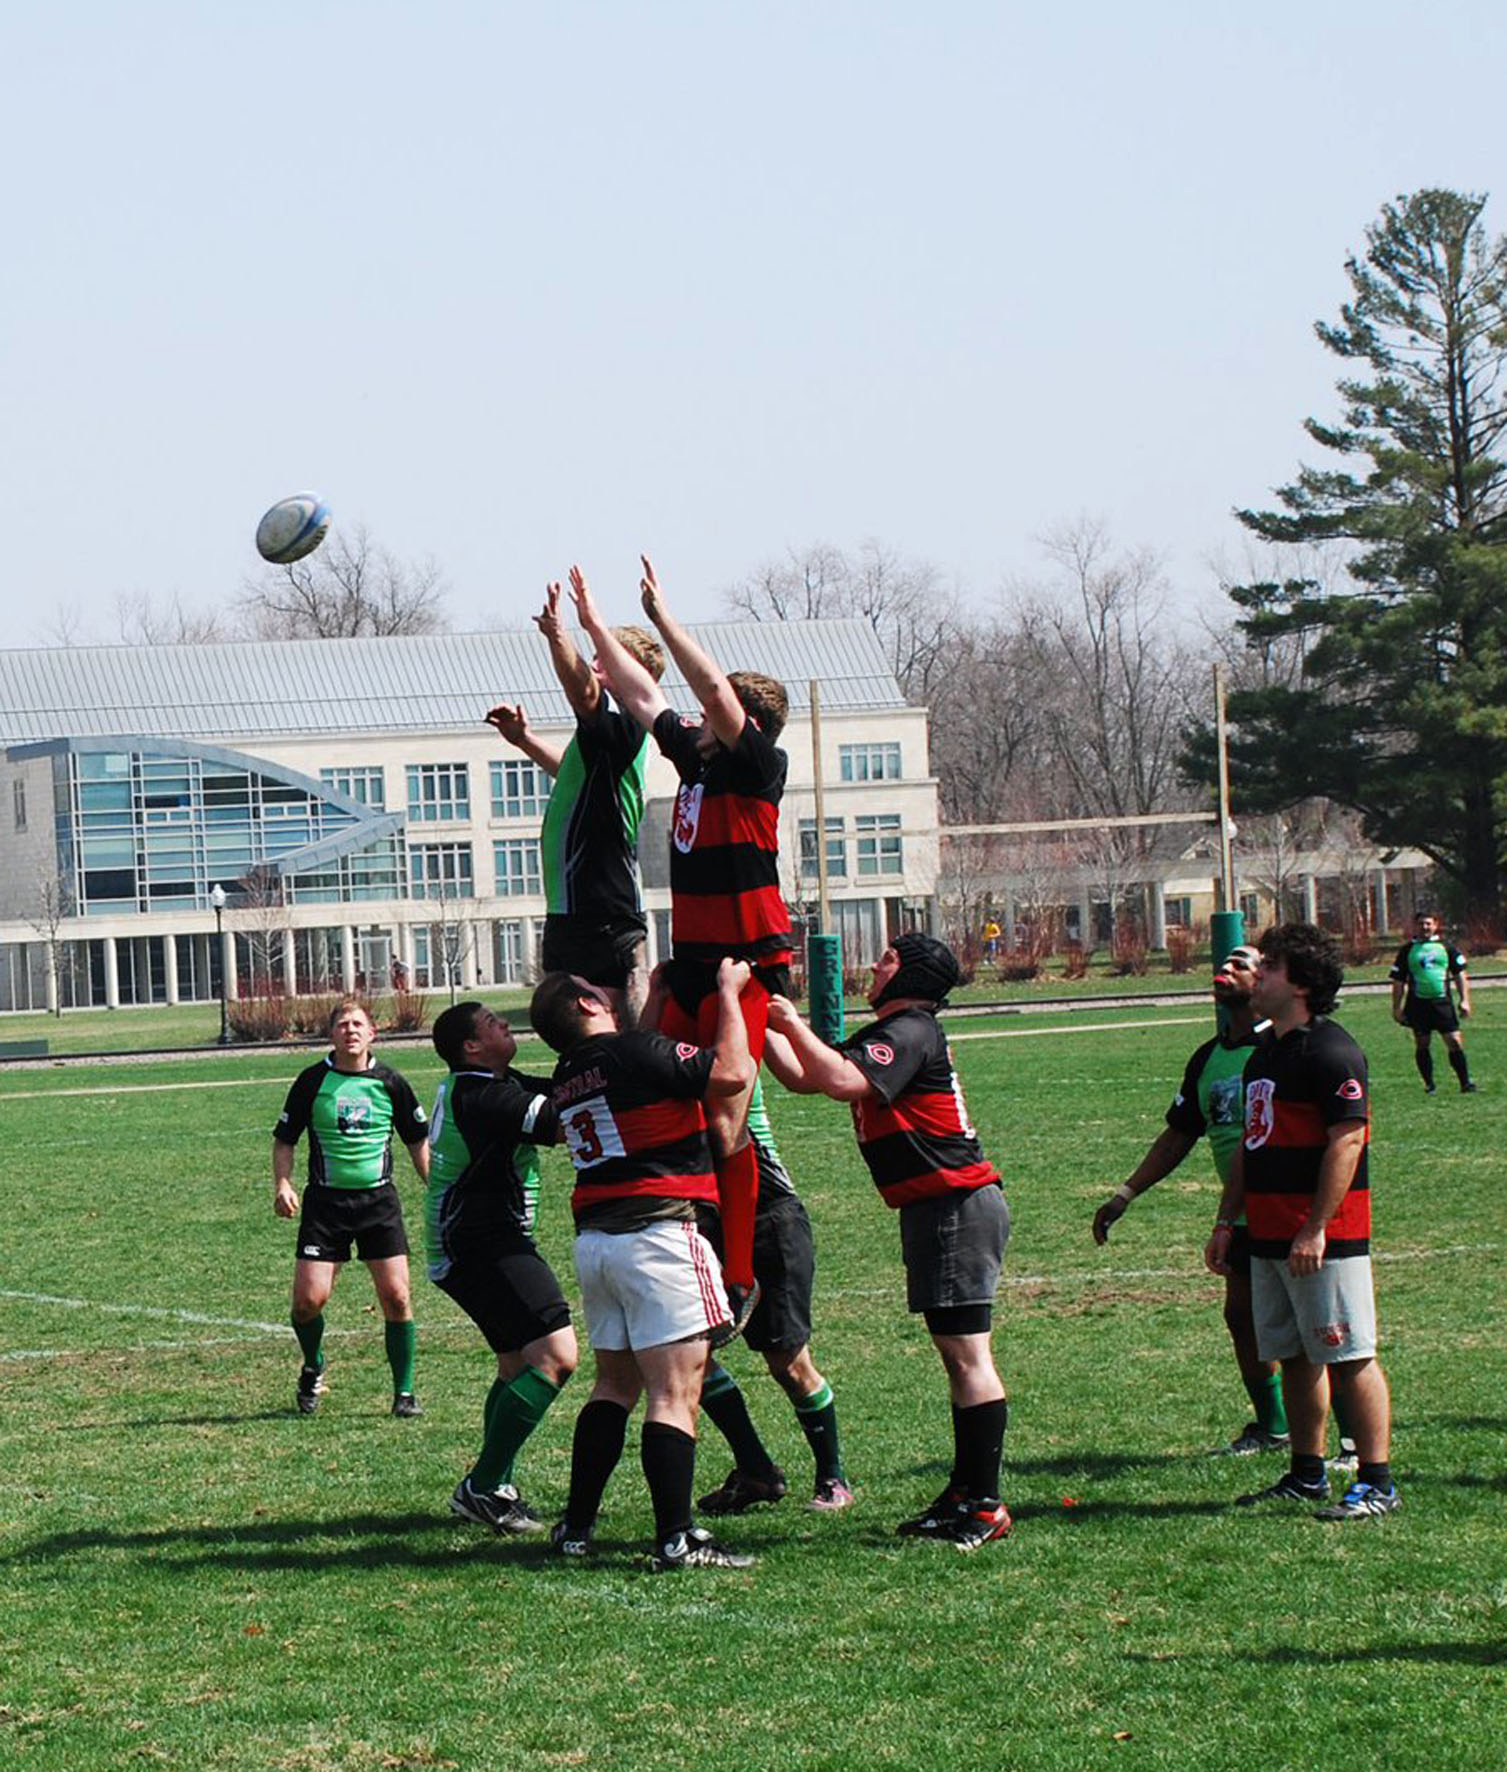 The Grinnell Griffins face off against Central College on Mac Field. Photo contributed.